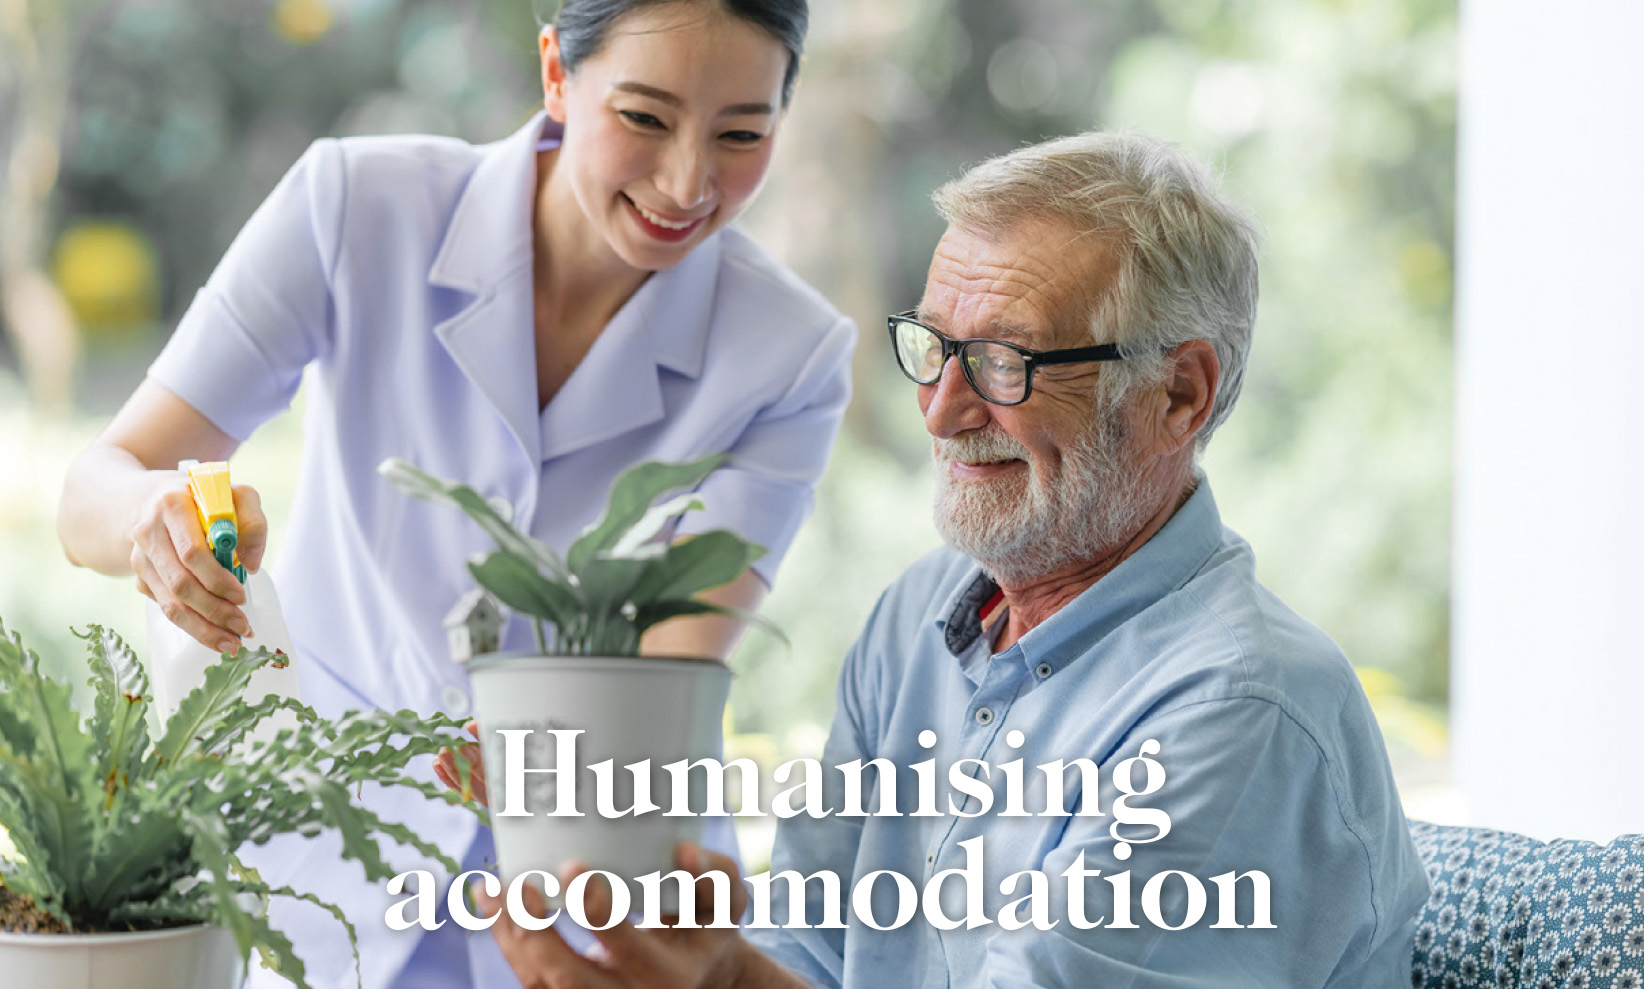 New thinking for aged care design.